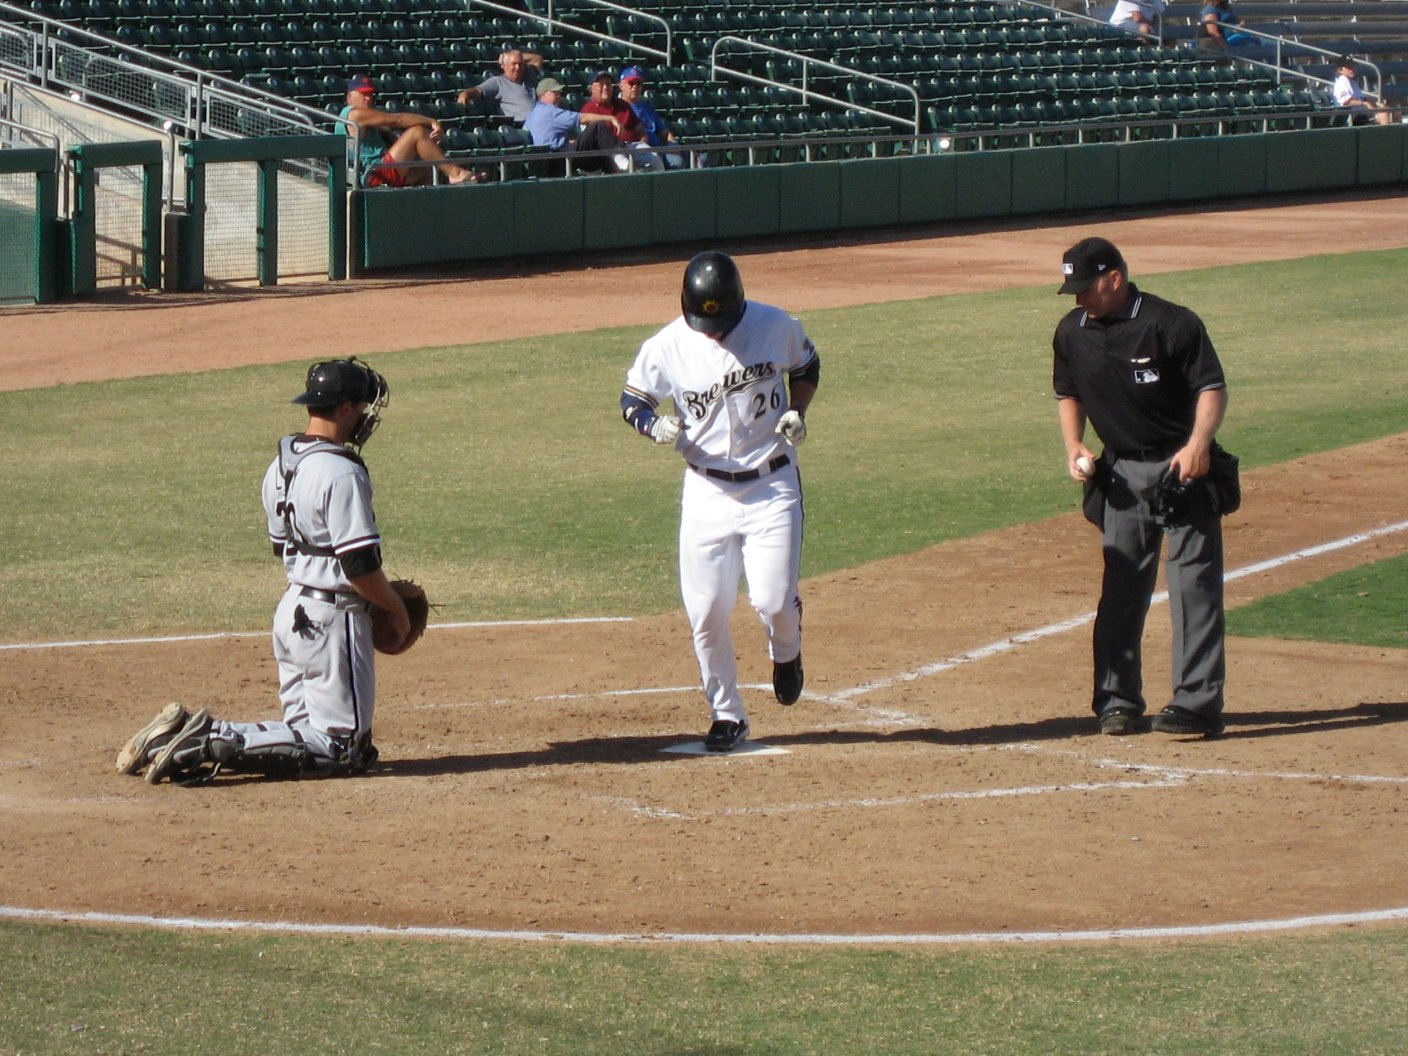 Matt Laporta crossing home plate for the Mesa Solar Sox - Arizona Fall League - 11/12/2007- soul-amp.com